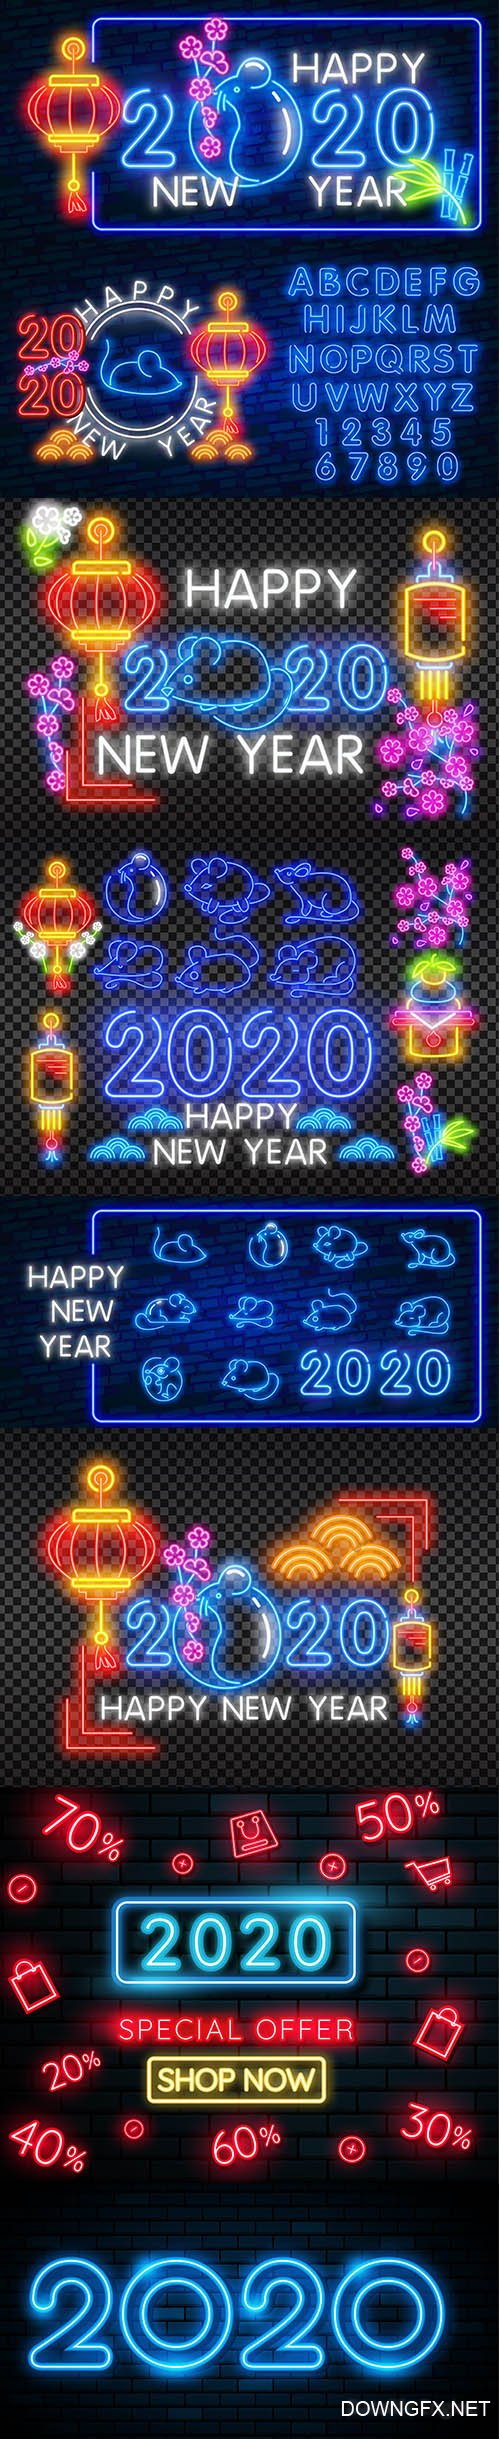 Chinese New Year 2020 Neon Greeting Card Backgrounds